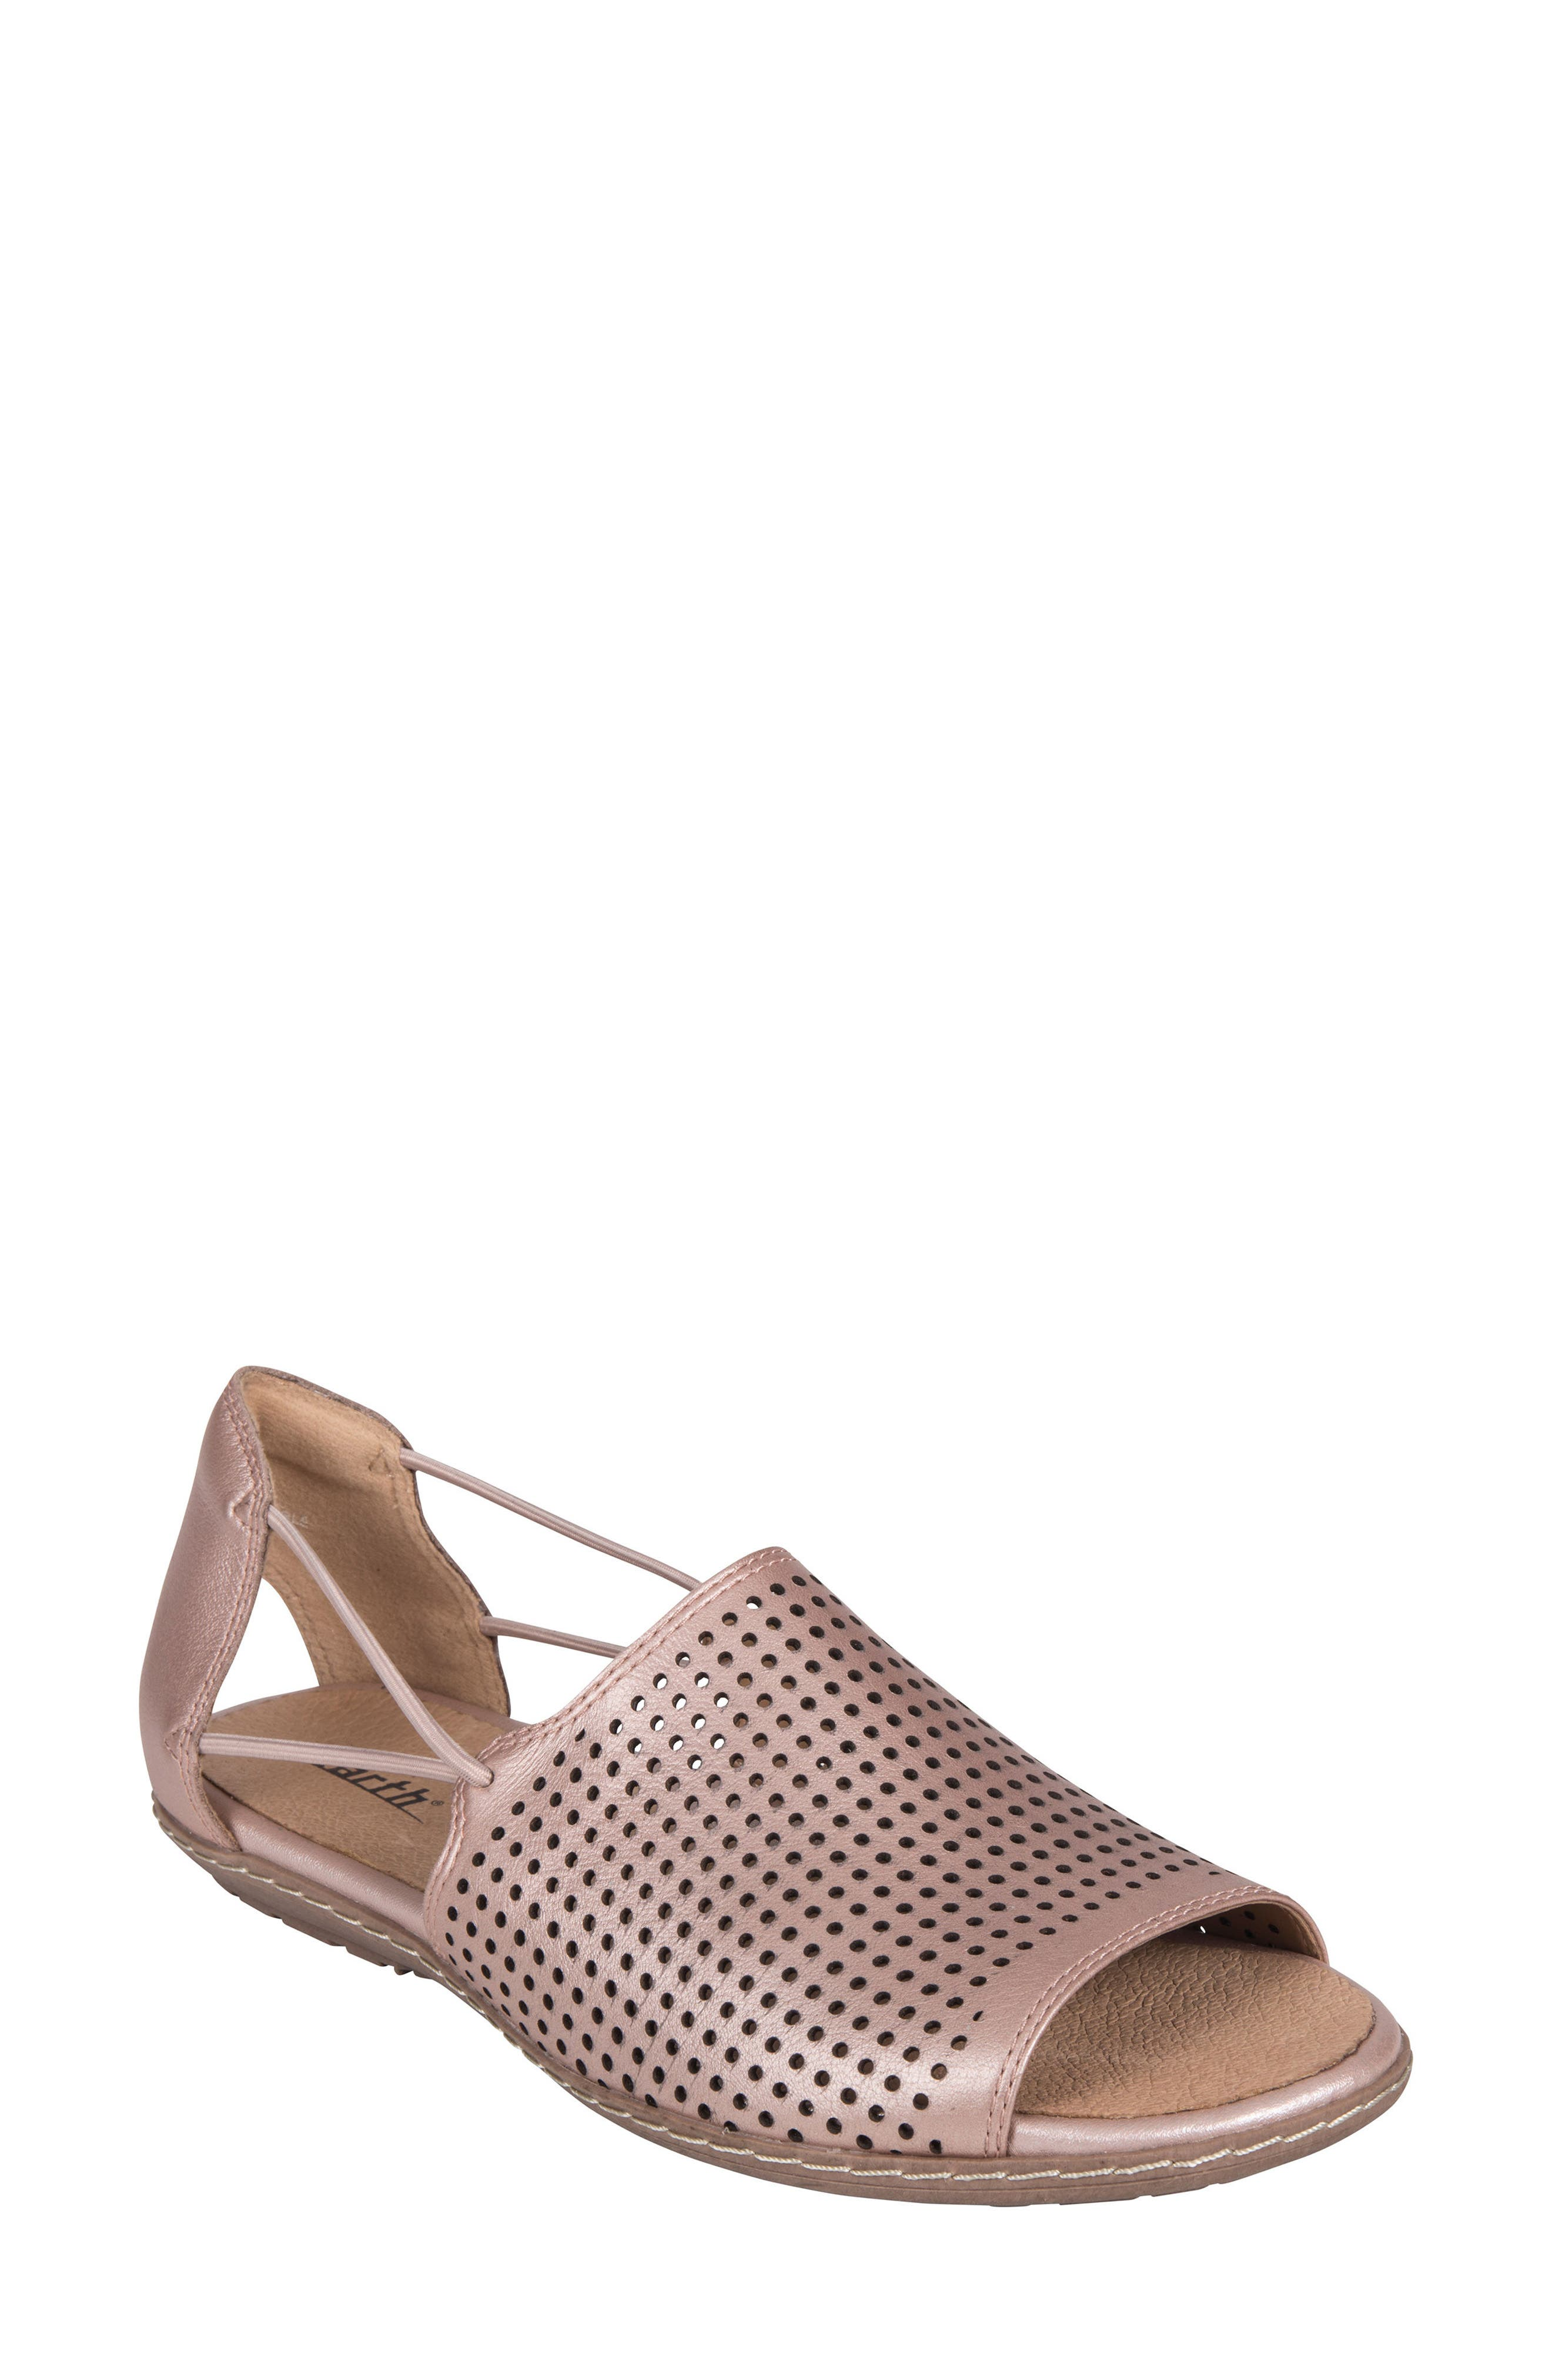 Shelly Sandal,                         Main,                         color, BLUSH METALLIC LEATHER